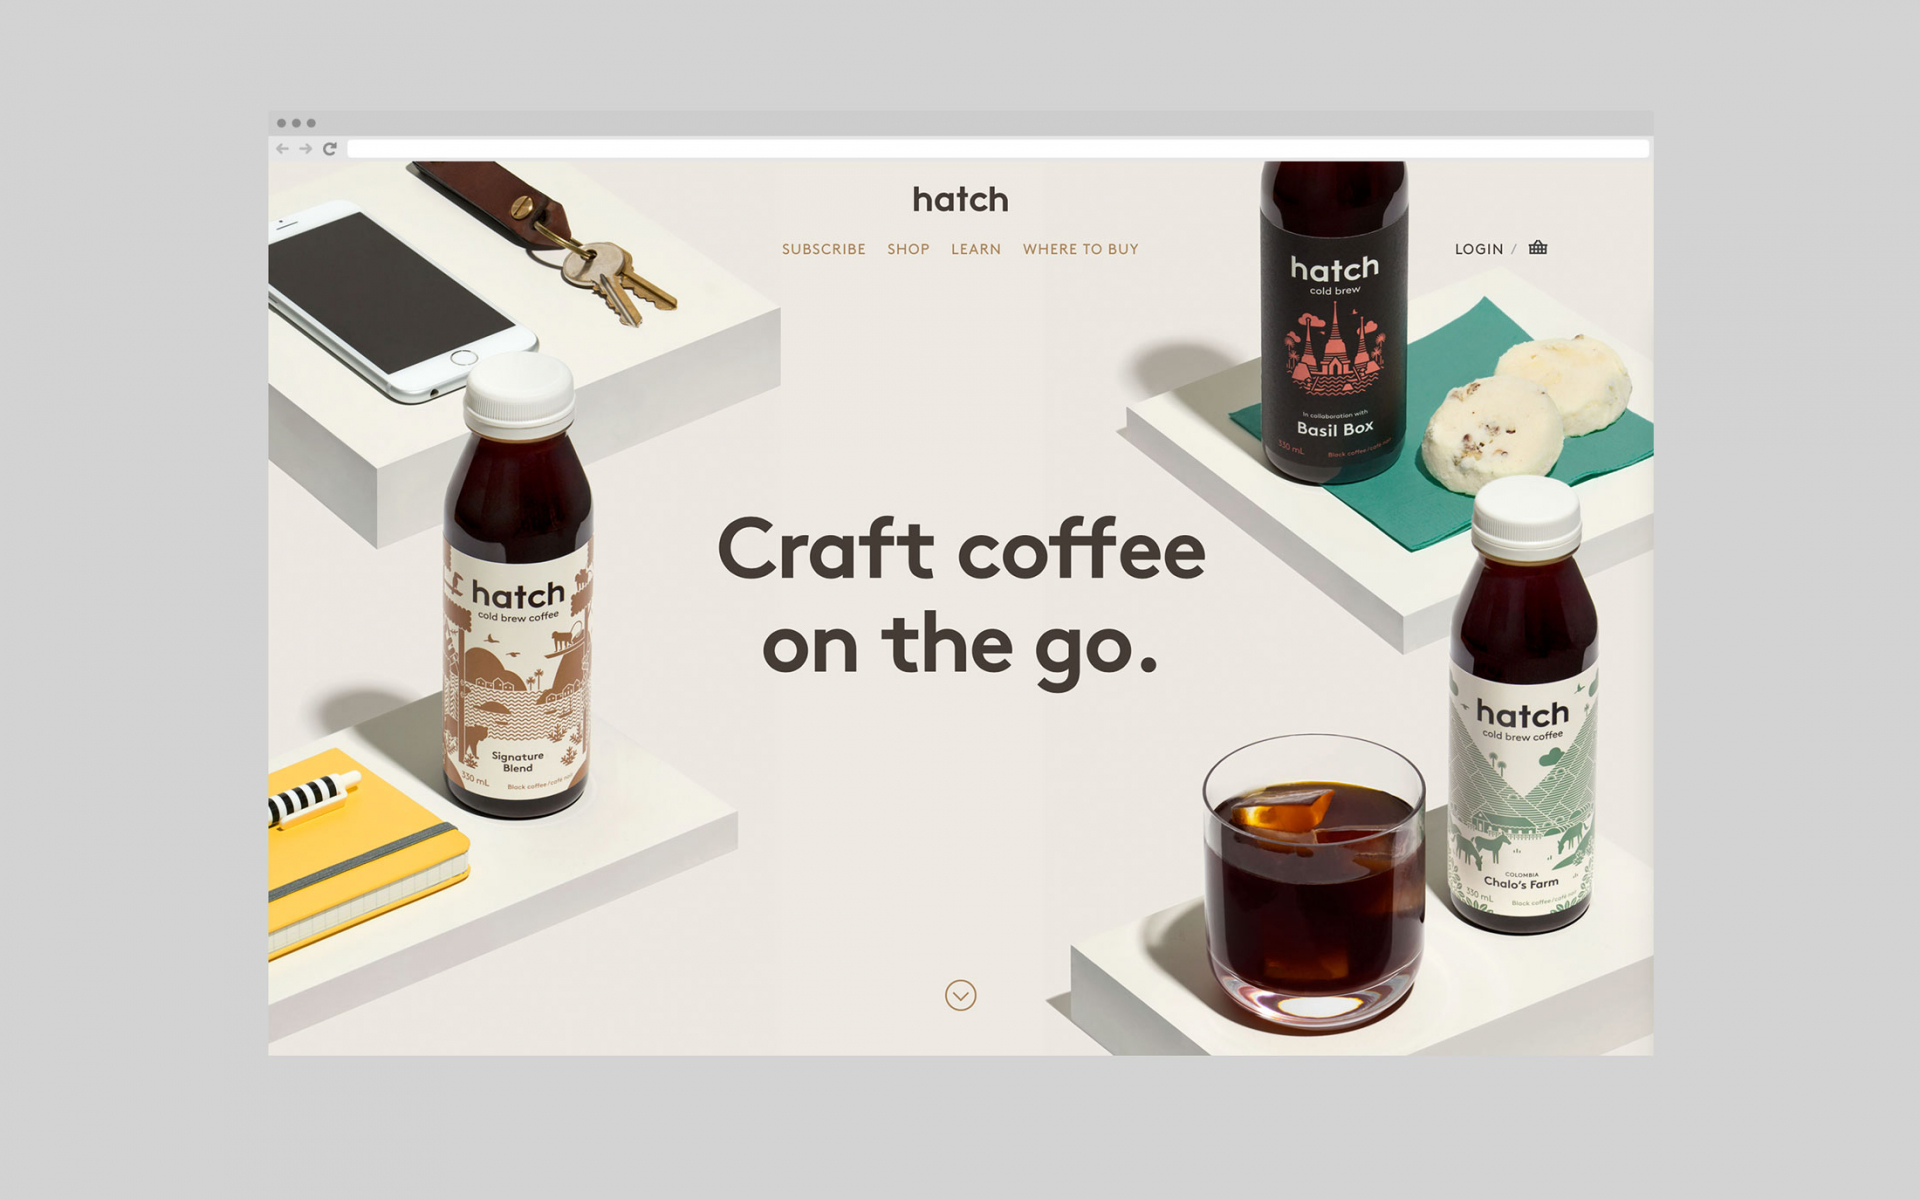 idesign hatchcoldbrew 07